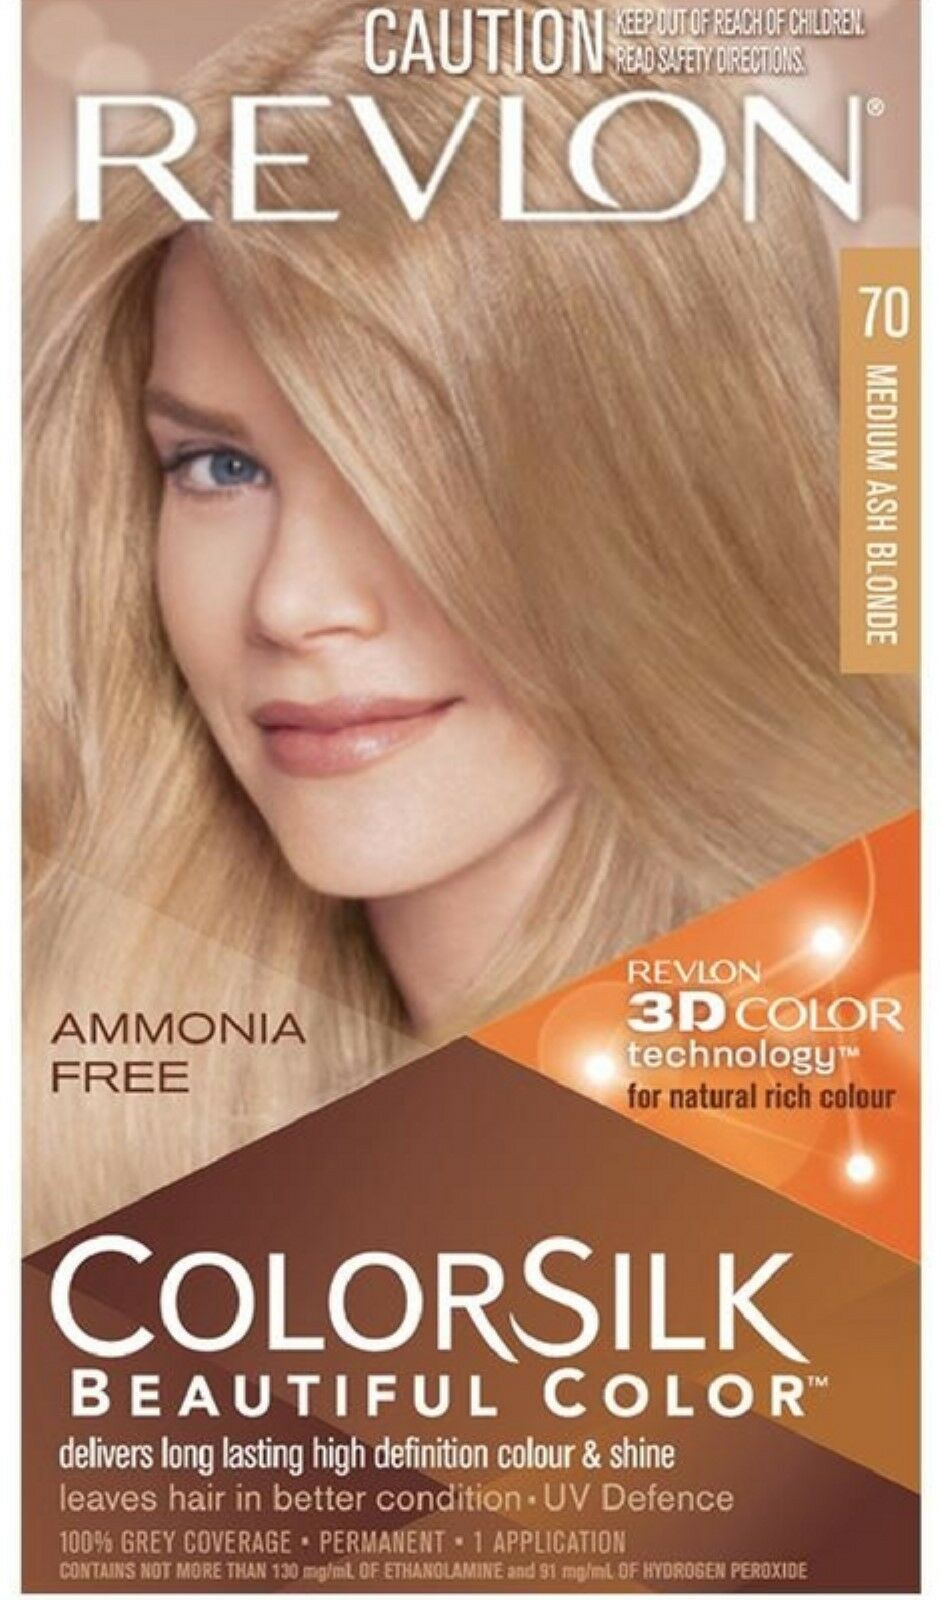 Revlon Colorsilk Hair Color 70 Medium Ash Blonde 1 Each 643